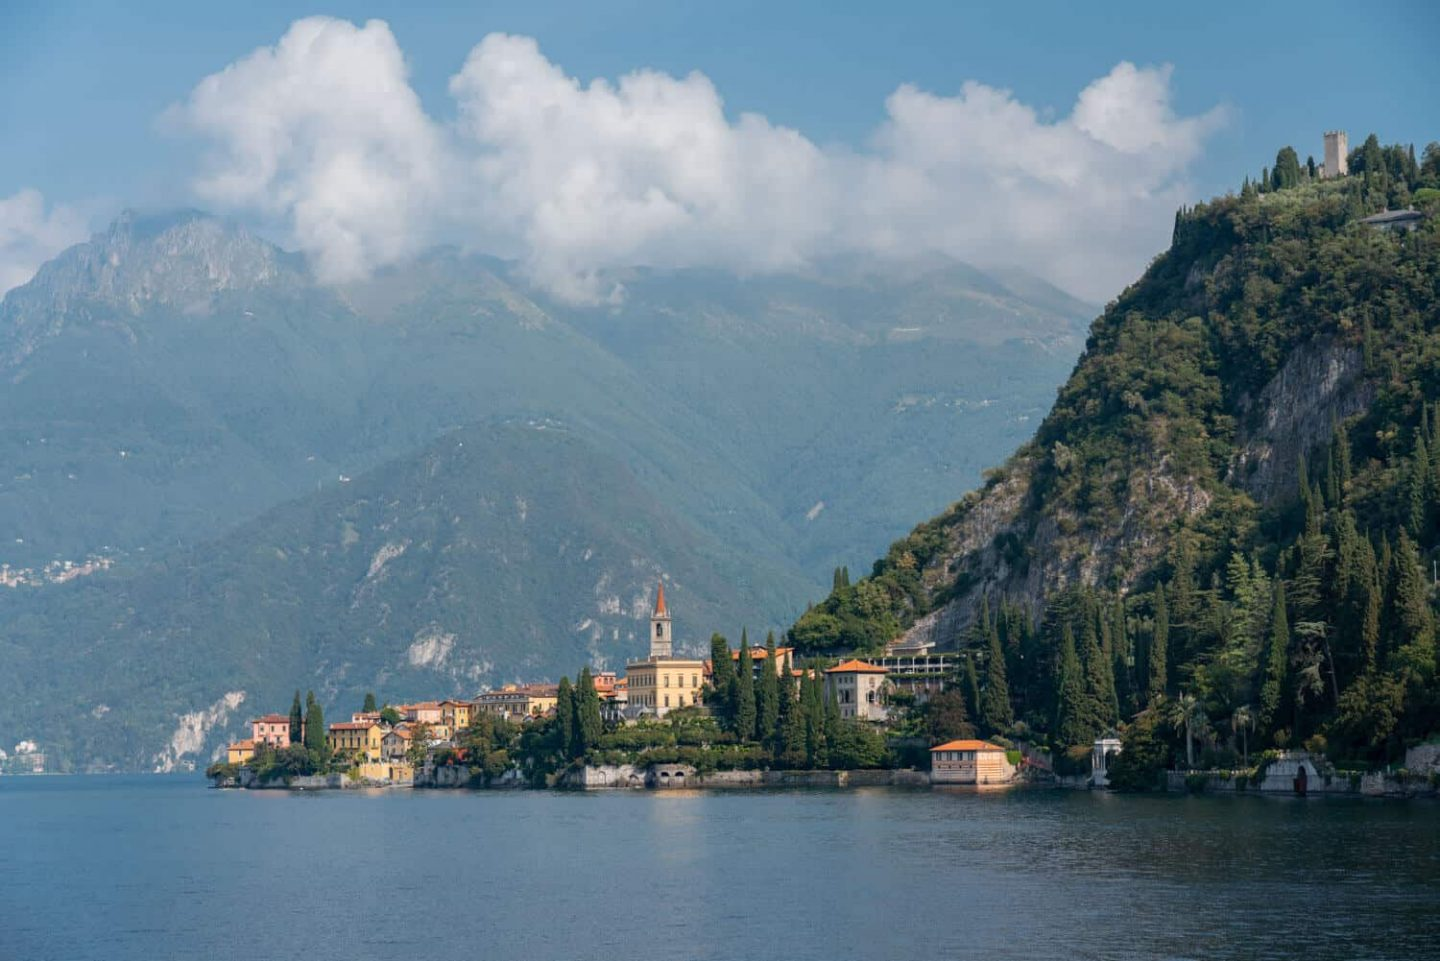 The lakeside town of Varenna nestled against a mountainous backdrop in Lake Como, a perfect day trip from Milan.